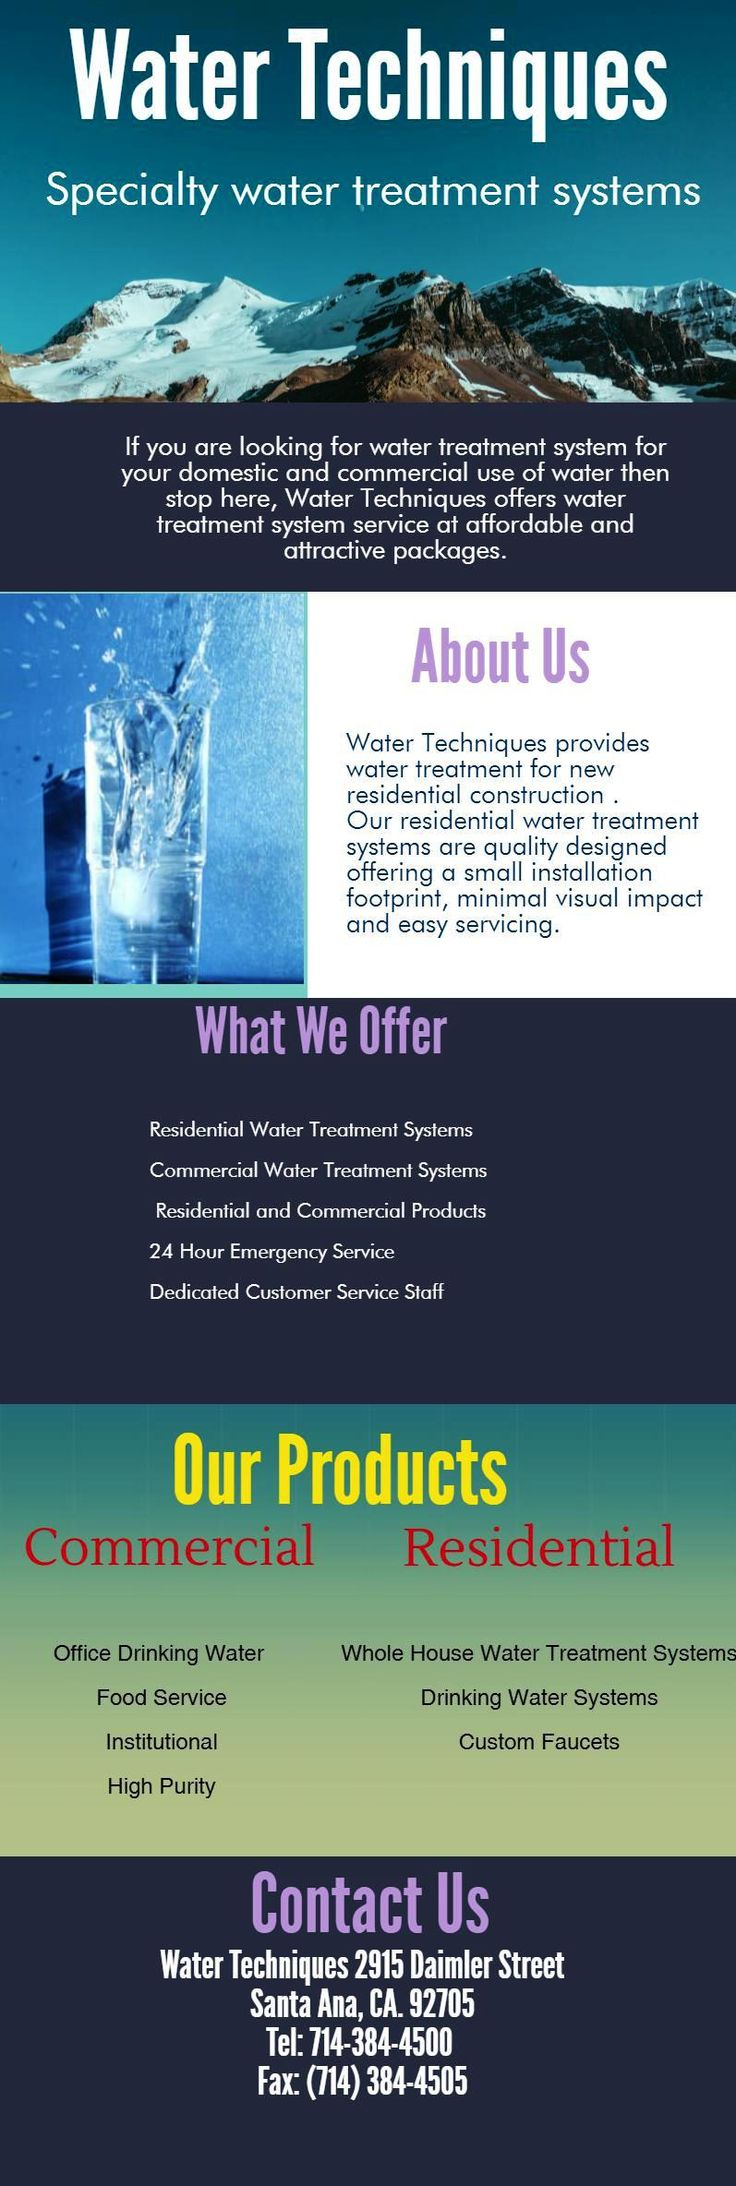 Water Techniques offers smart solutions to remove impurities from home water. We offer a free water test so you can find the best system for your needs. Water Techniques is the #1 rated home water treatment systems provider as well as commercial water treatment systems.